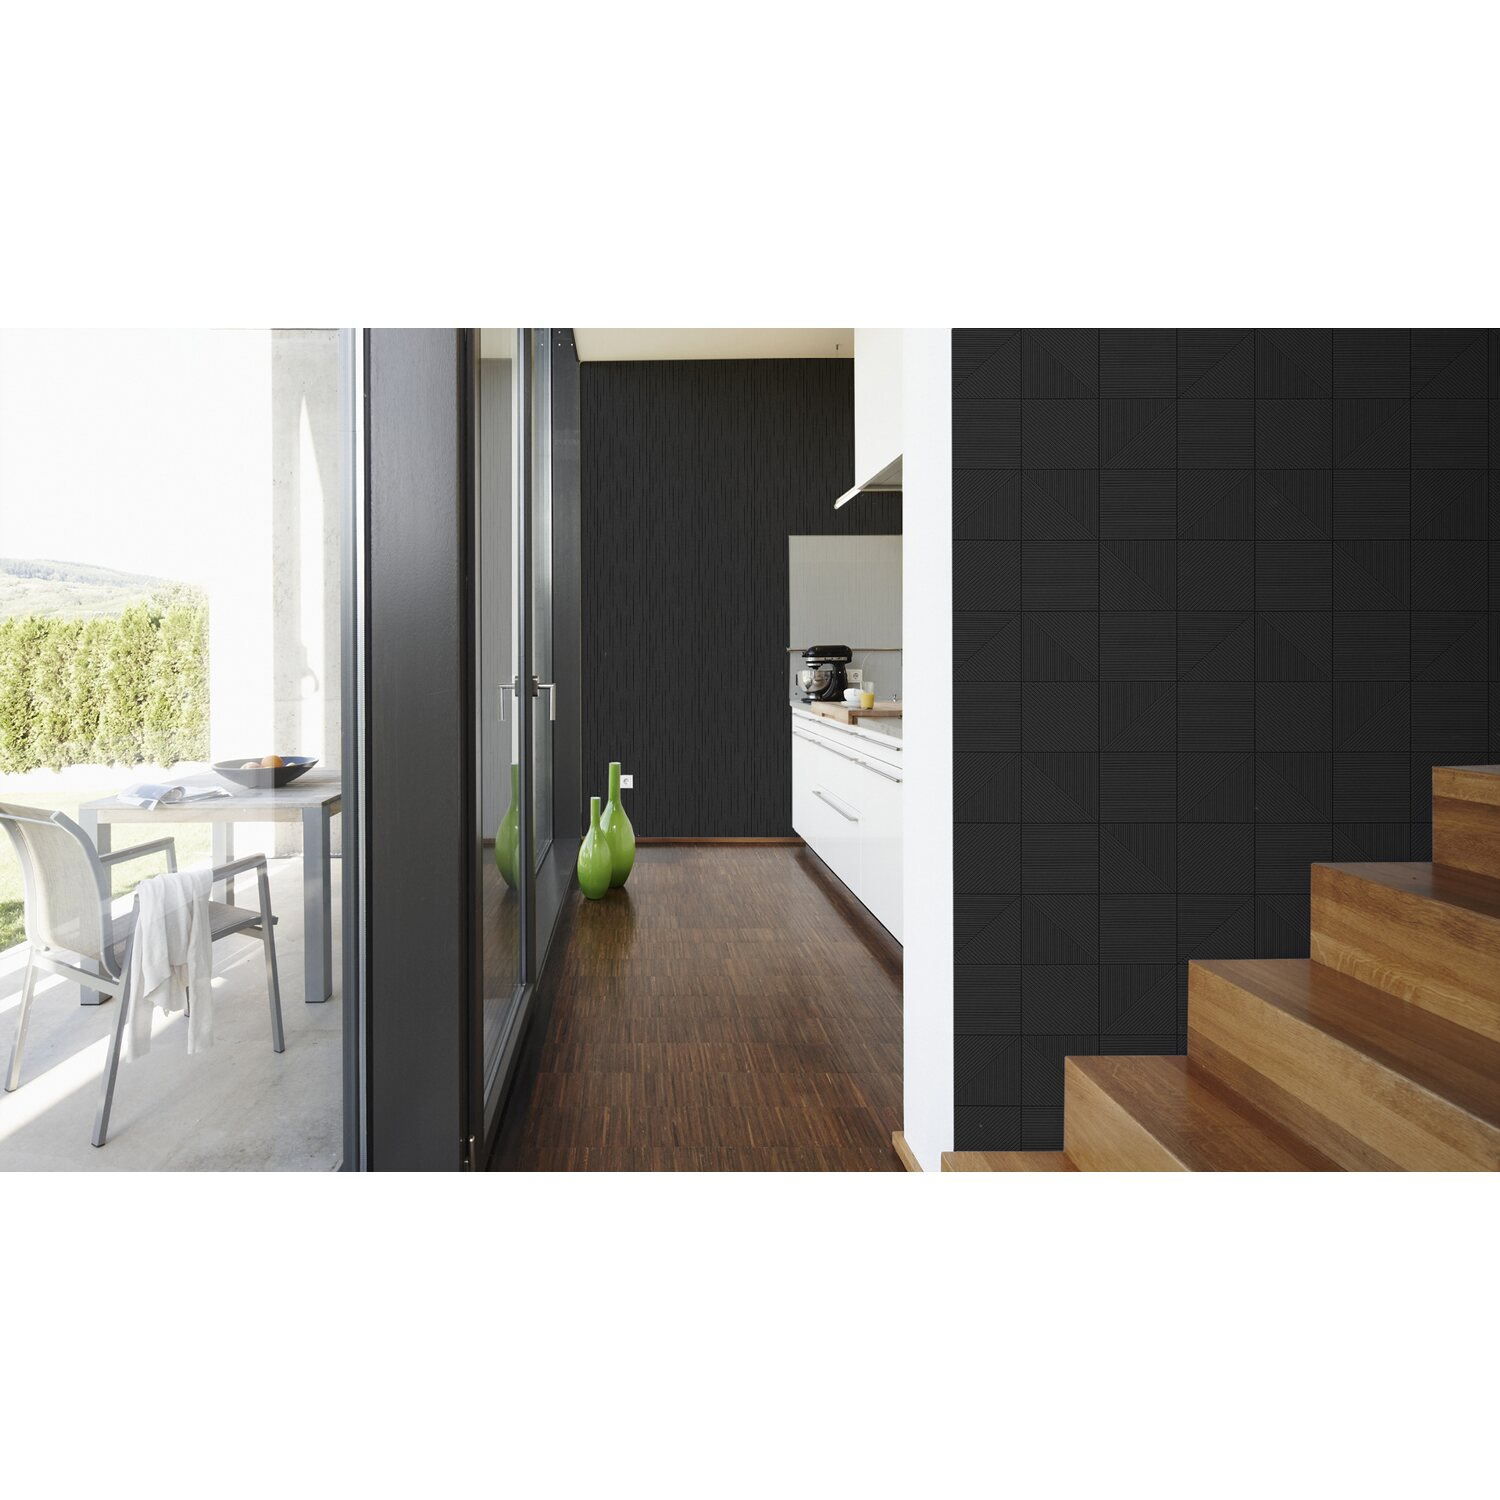 aisslinger vliestapete grafik schwarz kaufen bei obi. Black Bedroom Furniture Sets. Home Design Ideas